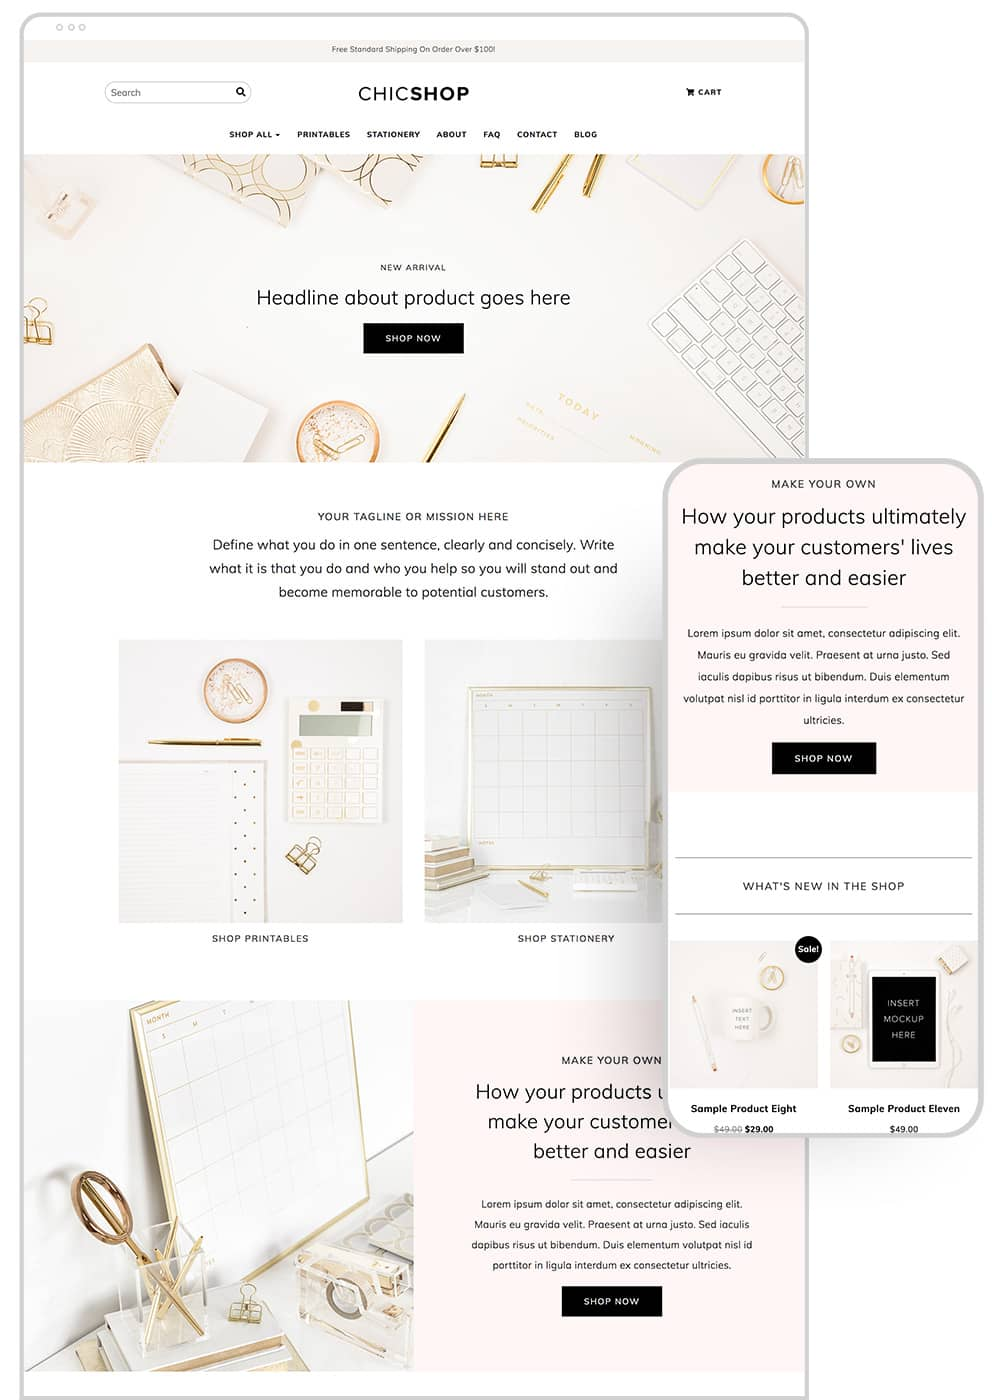 mockup-chicshop-theme-homepage